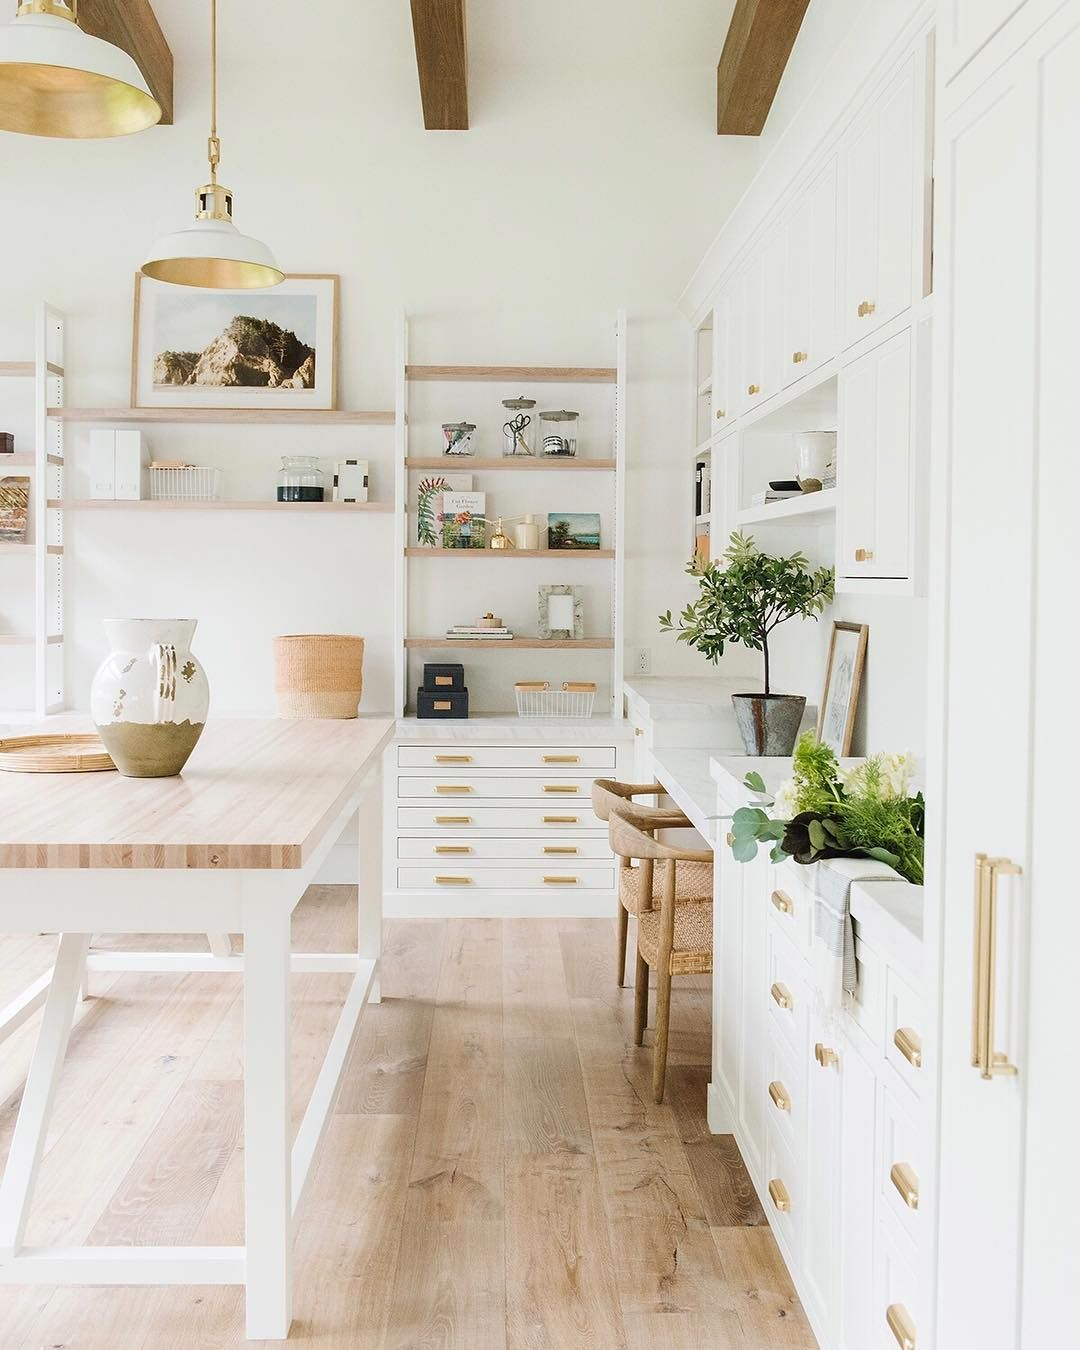 Studio Mcgee On Instagram It S The Craft Room To End All Craft Rooms With A Sink All The Storage Plenty Of W Craft Room Design Craft Room Modern Room